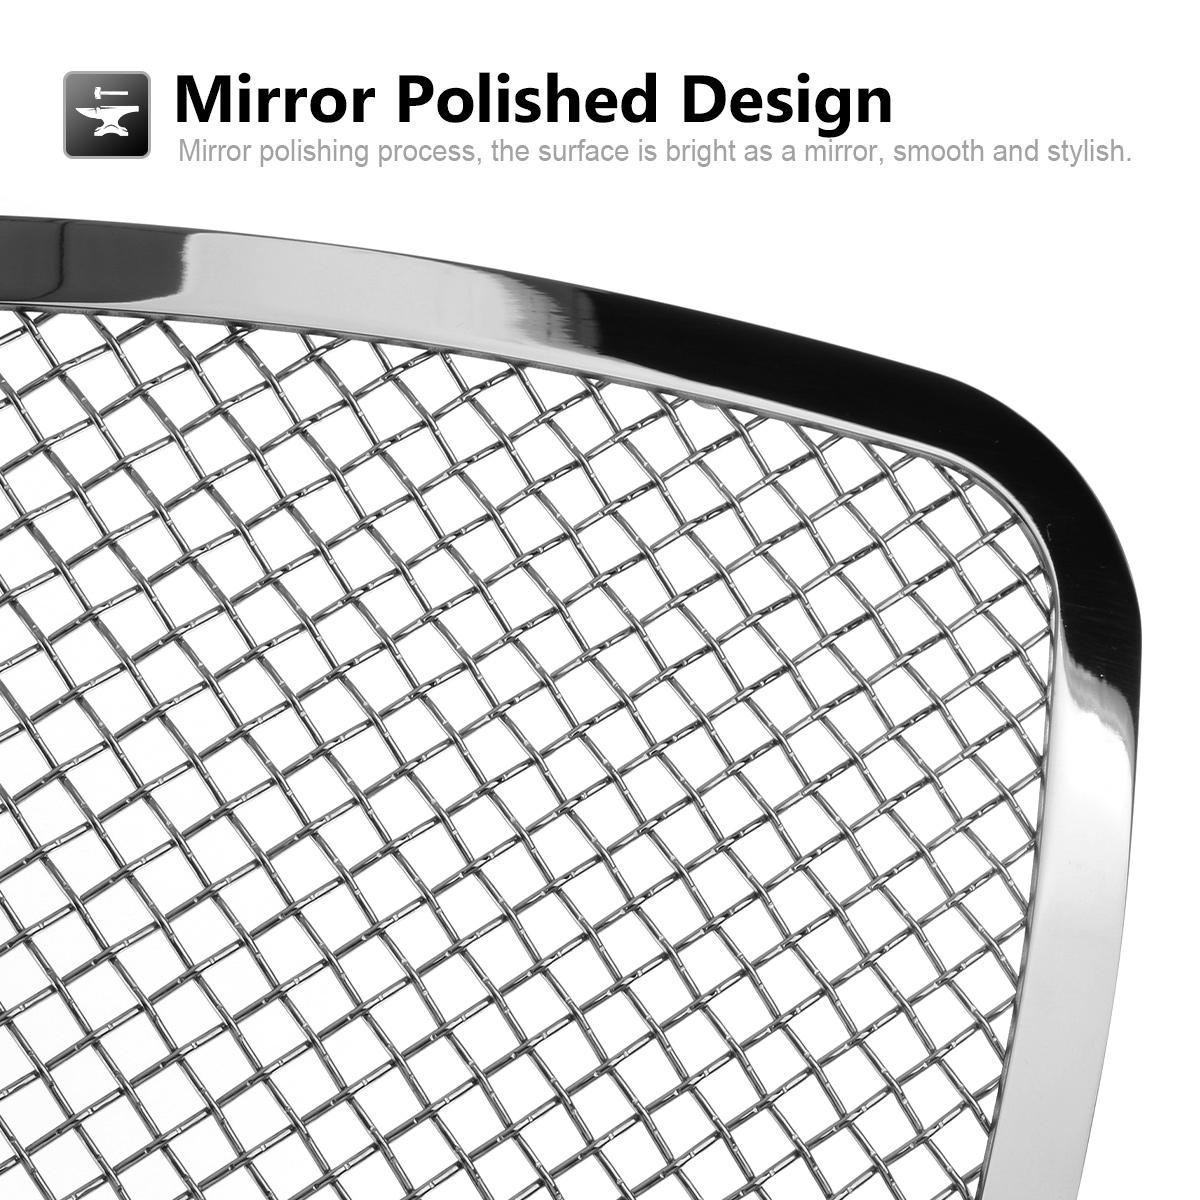 Chrome S/S Mesh Grille Grill Insert 1.8mm Wire Fits 06-08